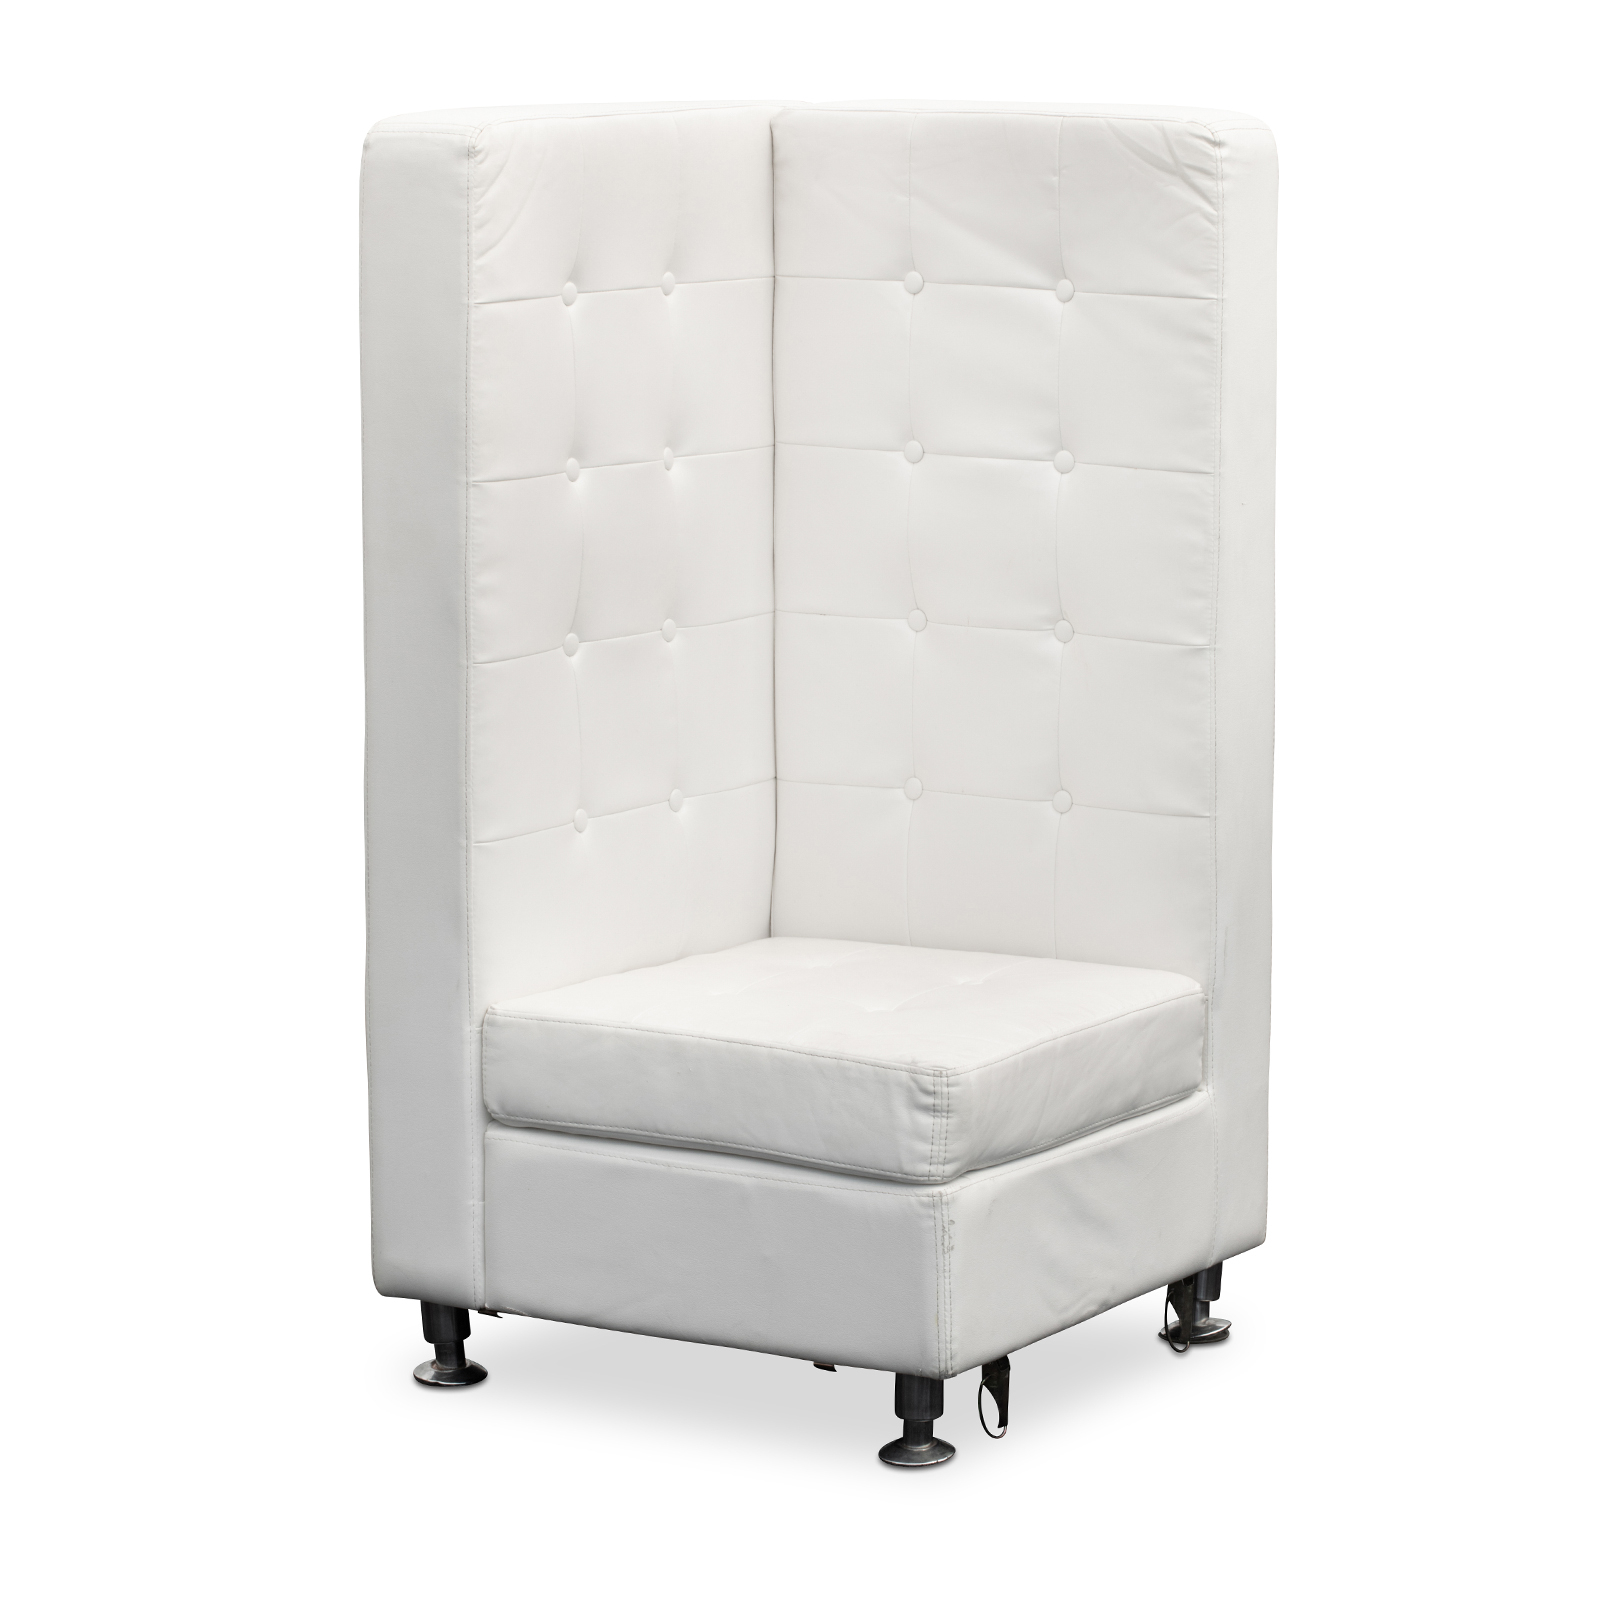 Lounge Furniture : High Back Tufted Sofa, Corner, White With Regard To Sofas With High Backs (View 11 of 15)